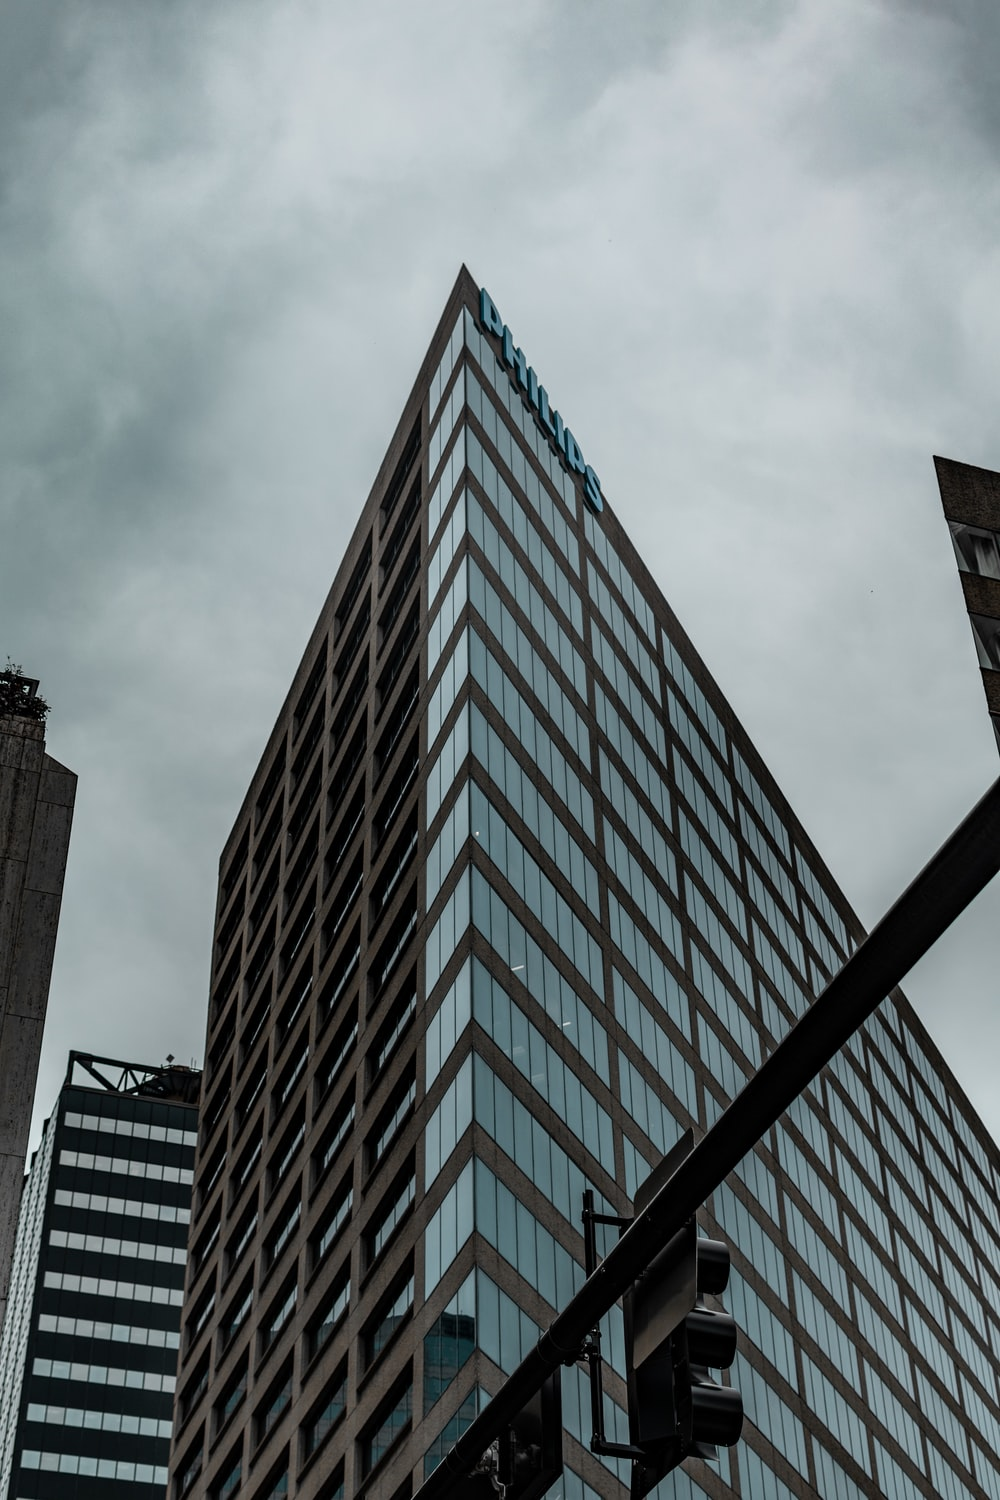 curtain wall glass building during daytime